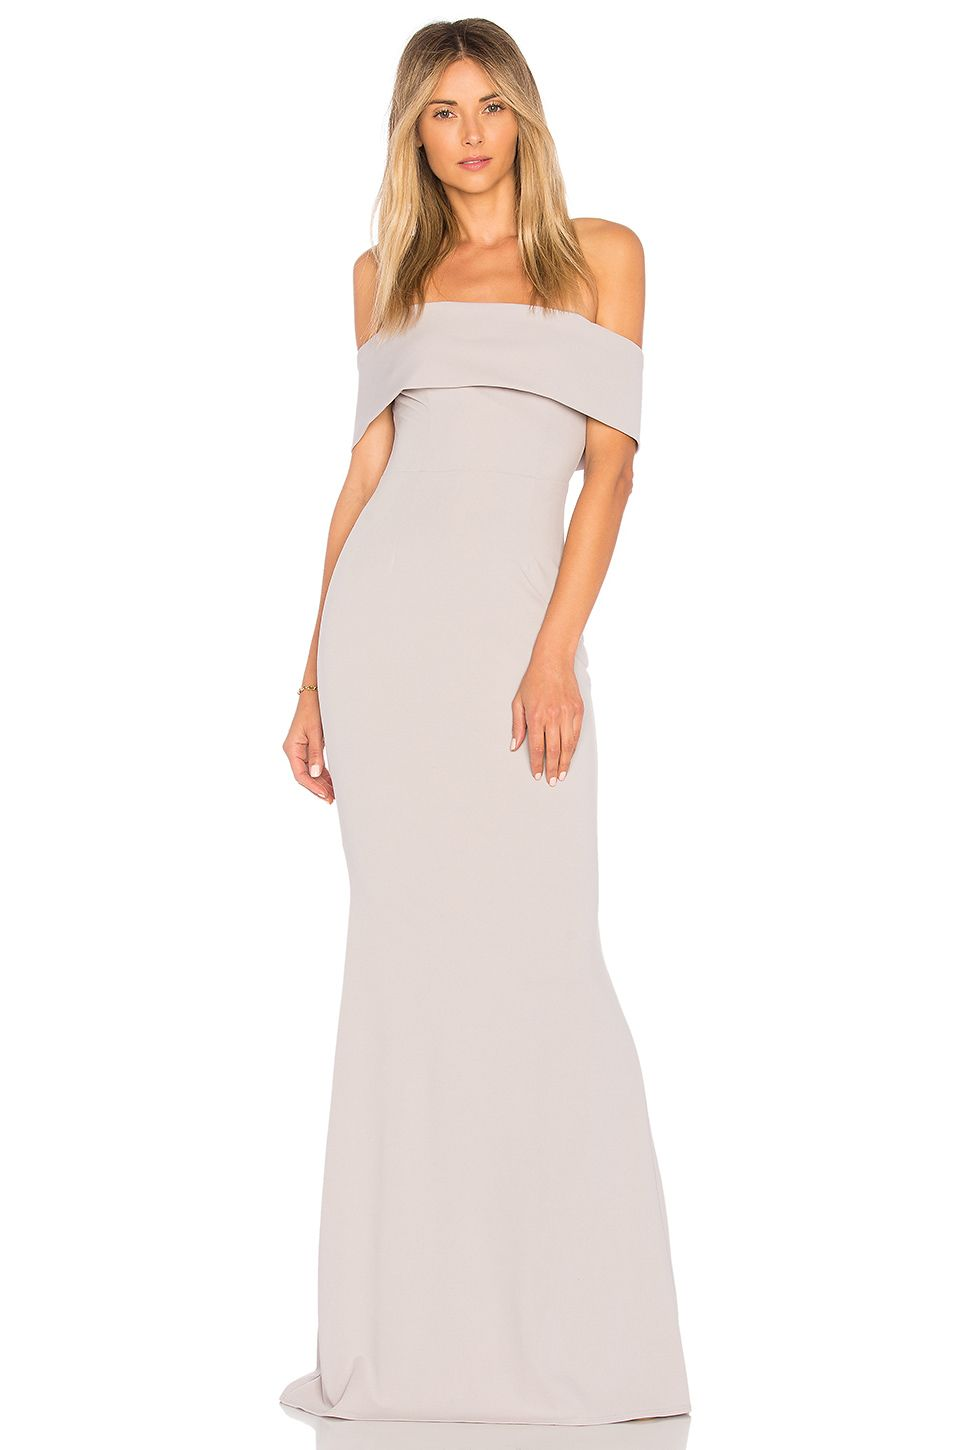 Katie may legacy gown in dove neutral bridesmaid dresses